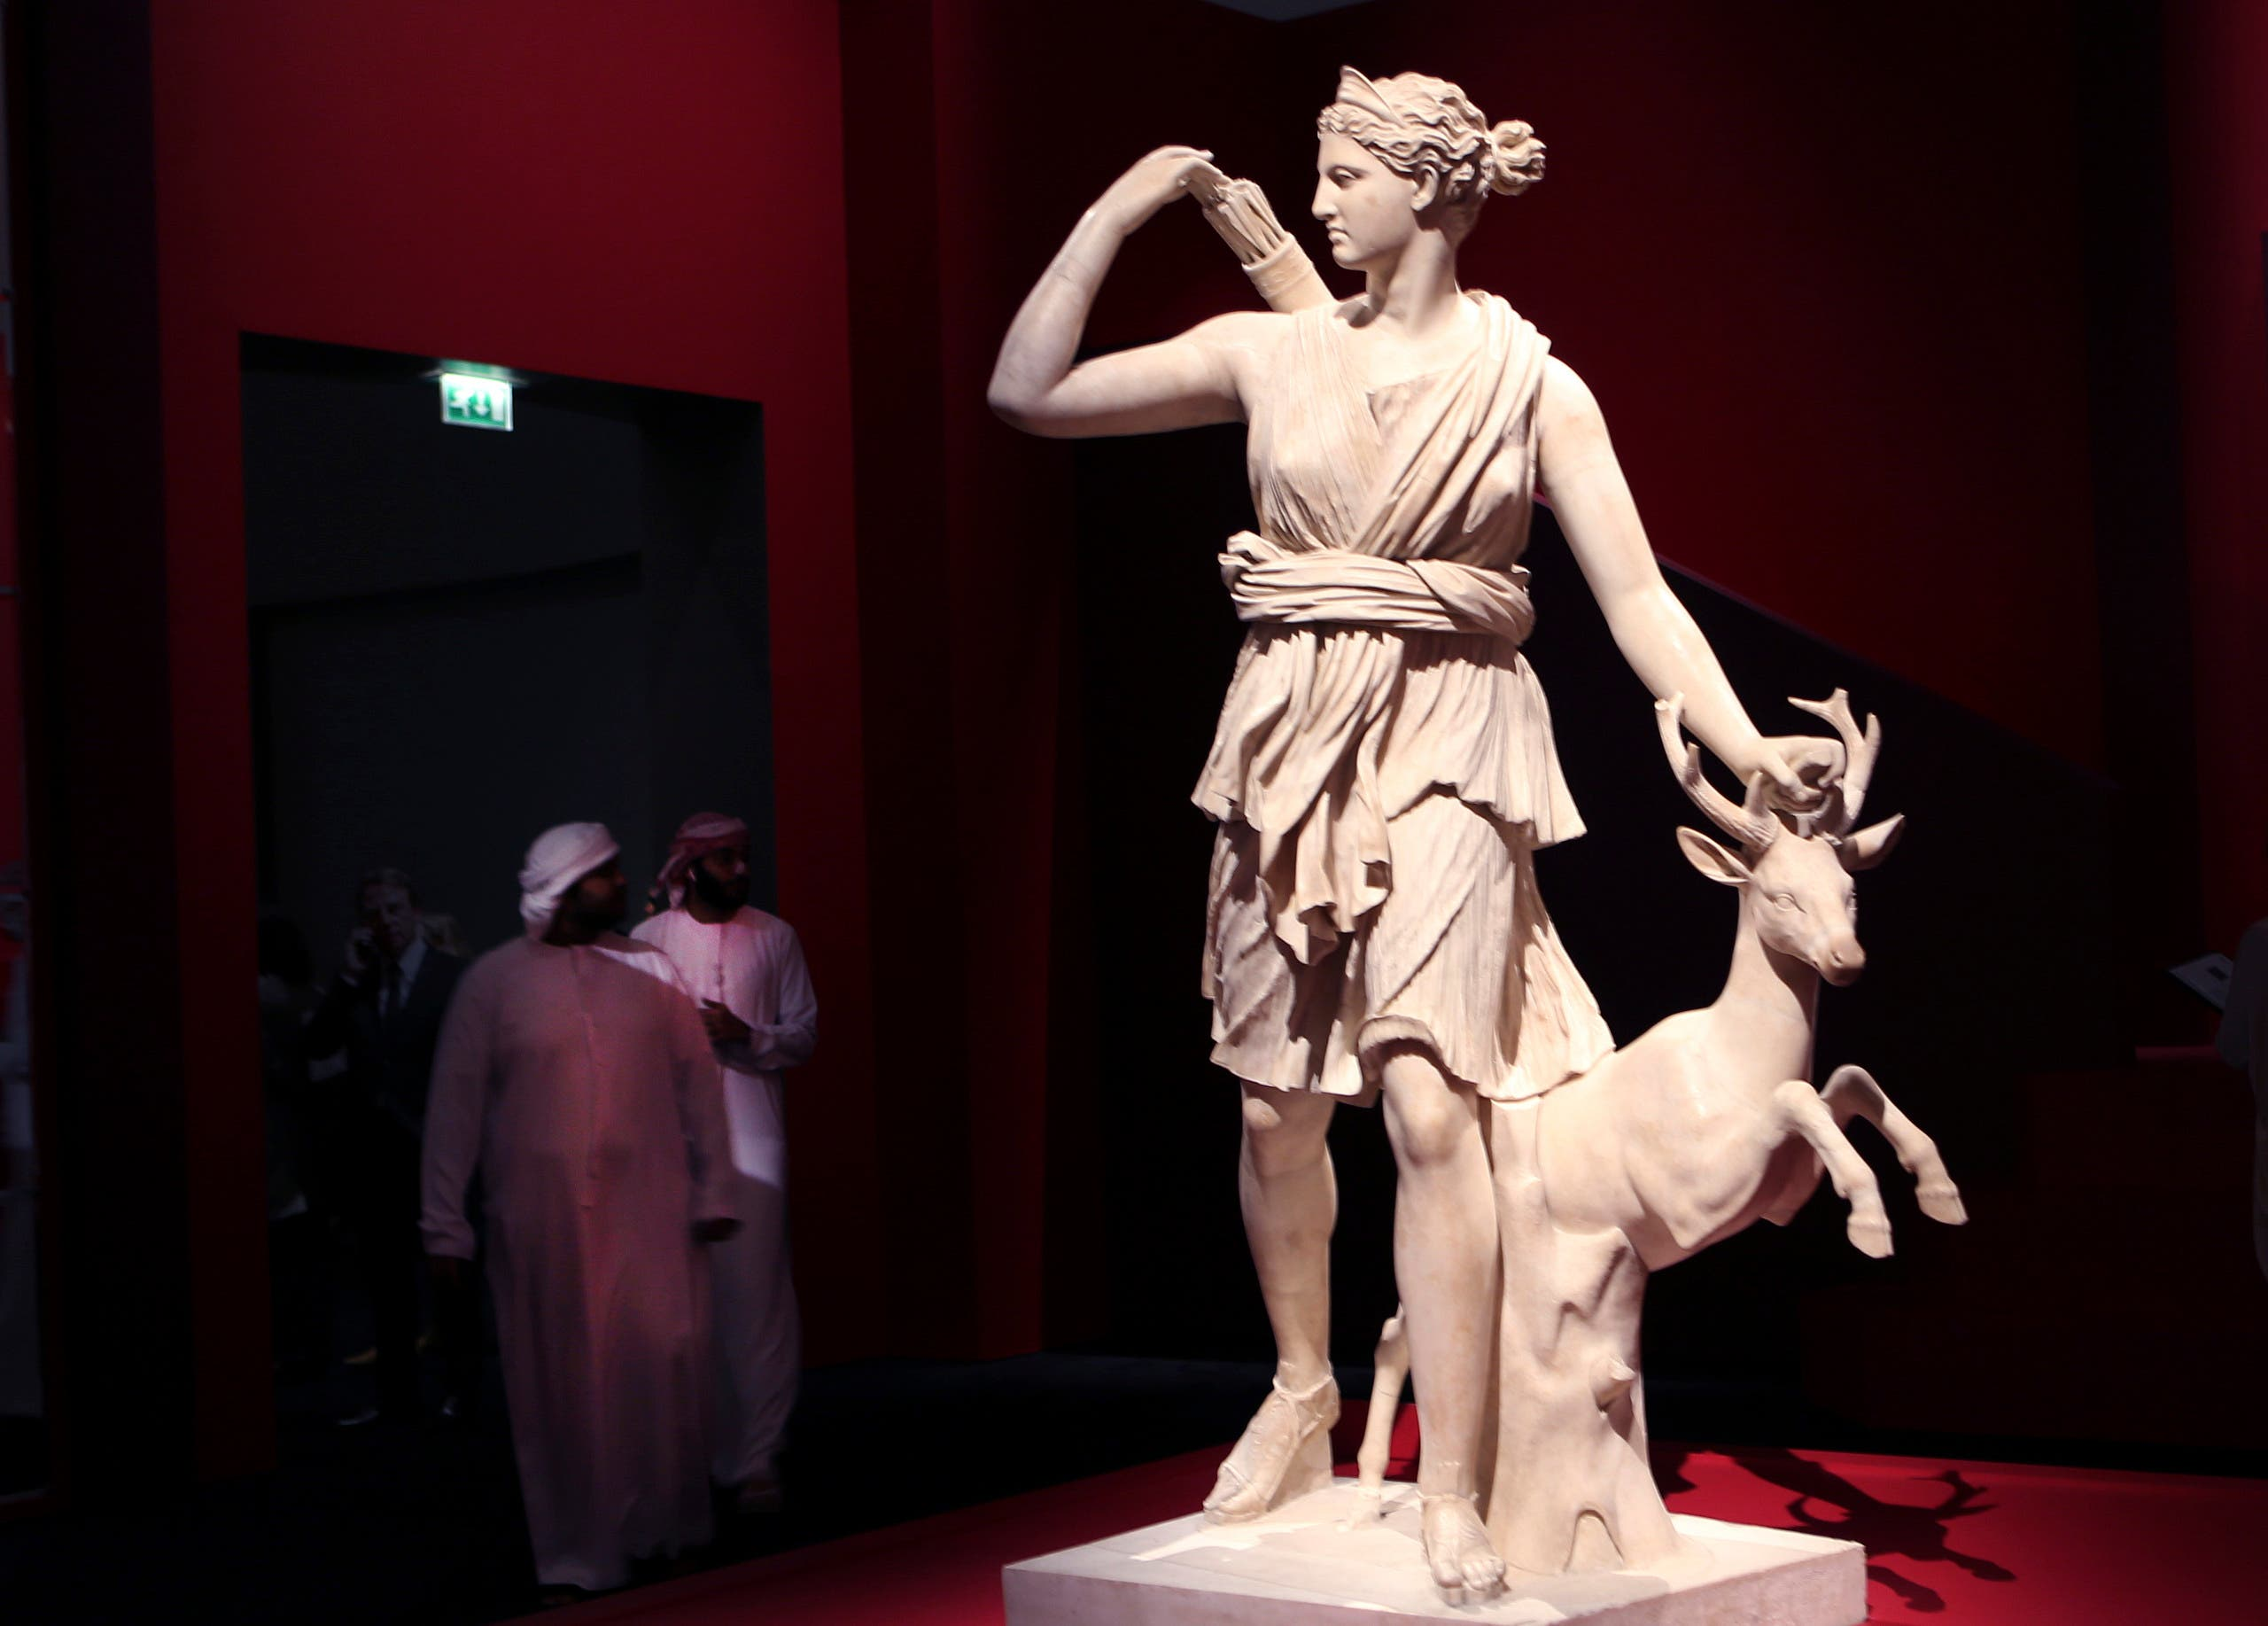 Emirati men passe by the The Diana of Versailles or Artemis of the hunter sculpture, Italy, 2nd Century CE, at the Louvre Museum in Abu Dhabi, United Arab Emirates, Tuesday, Dec. 19, 2017. (AP)